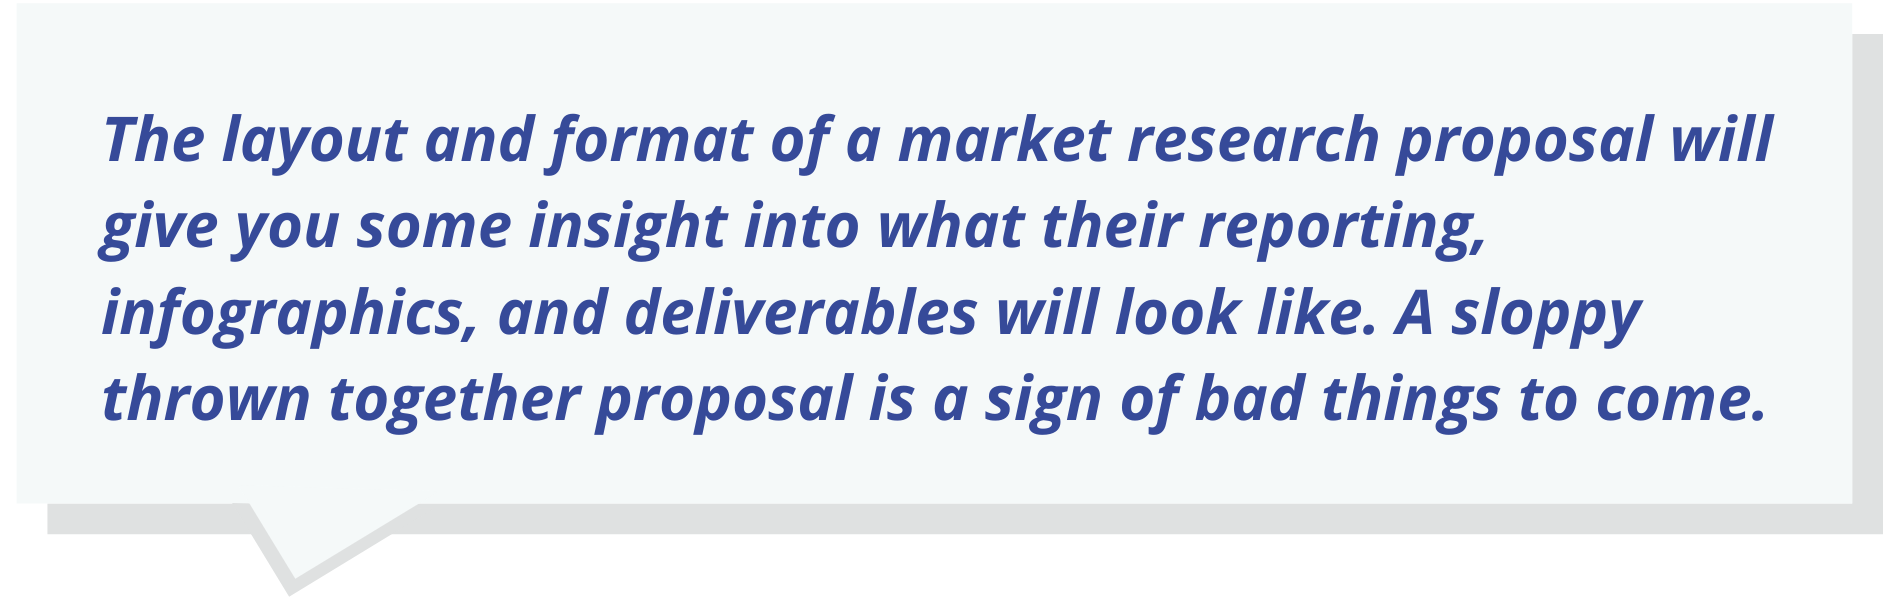 The layout and format of a market research proposal will give you some insight into what their reporting, infographics, and deliverables will look like. A sloppy thrown together proposal is a sign of bad things to come.